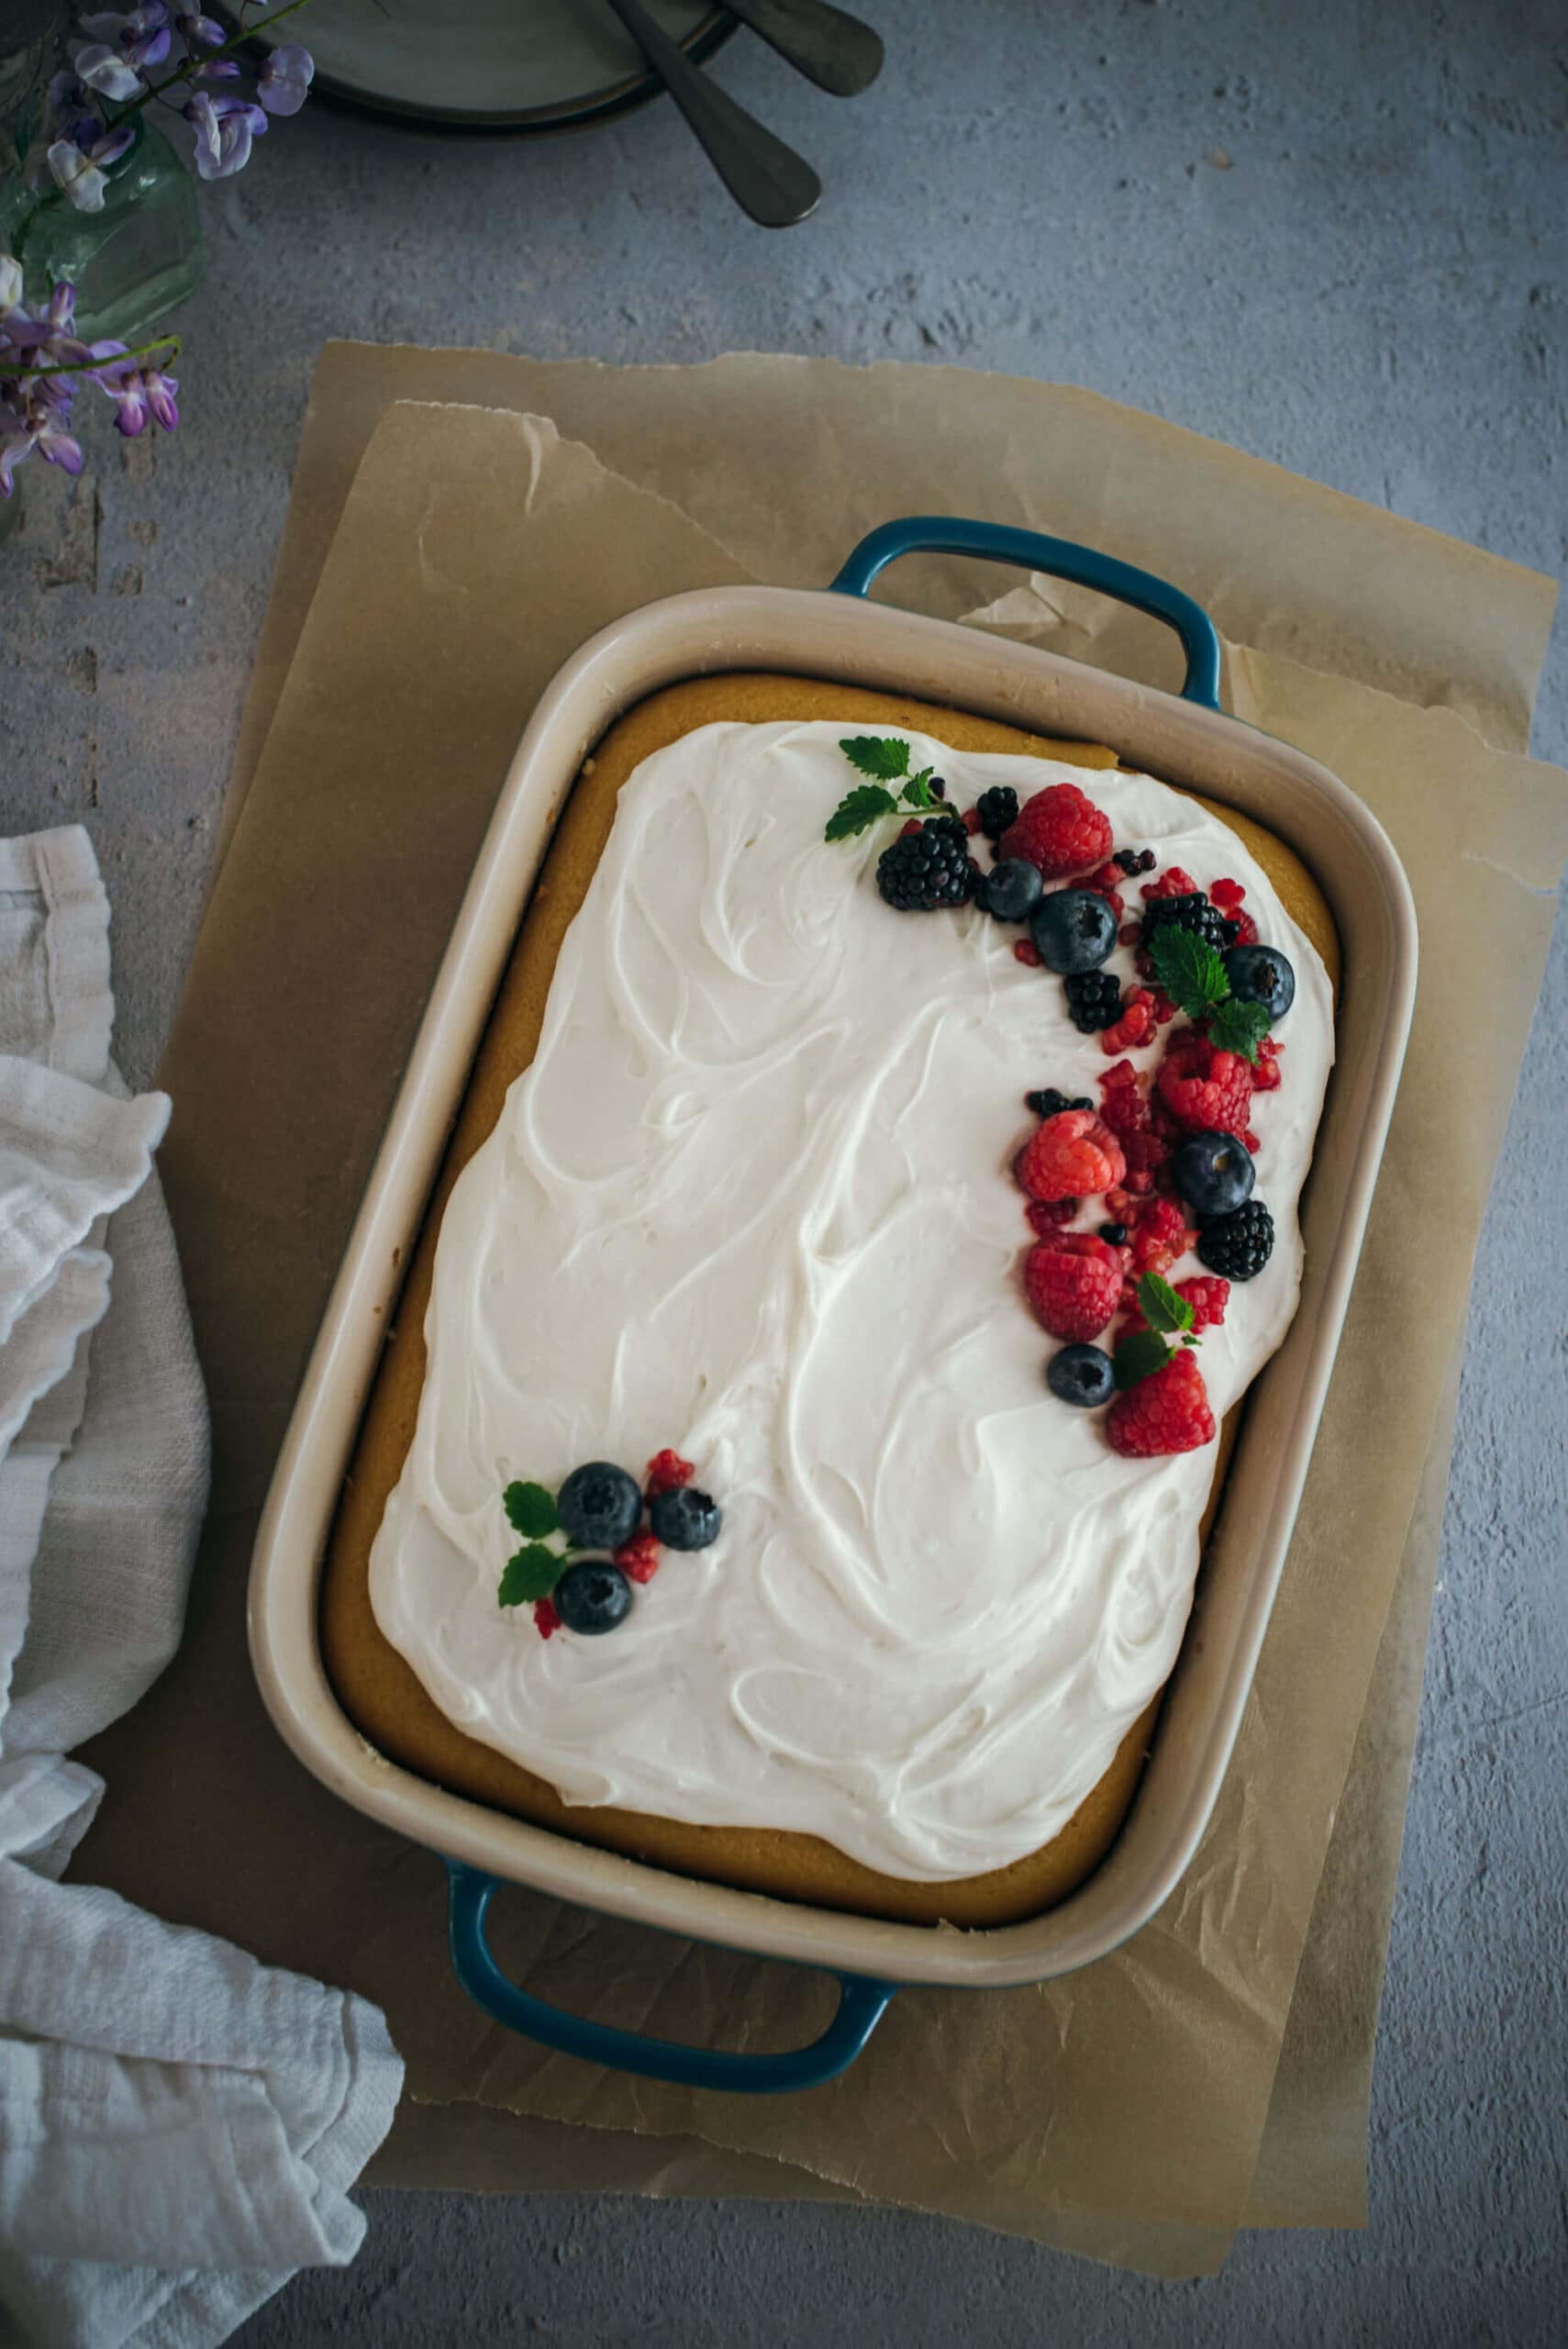 Tres leches cake sheet cake with berries